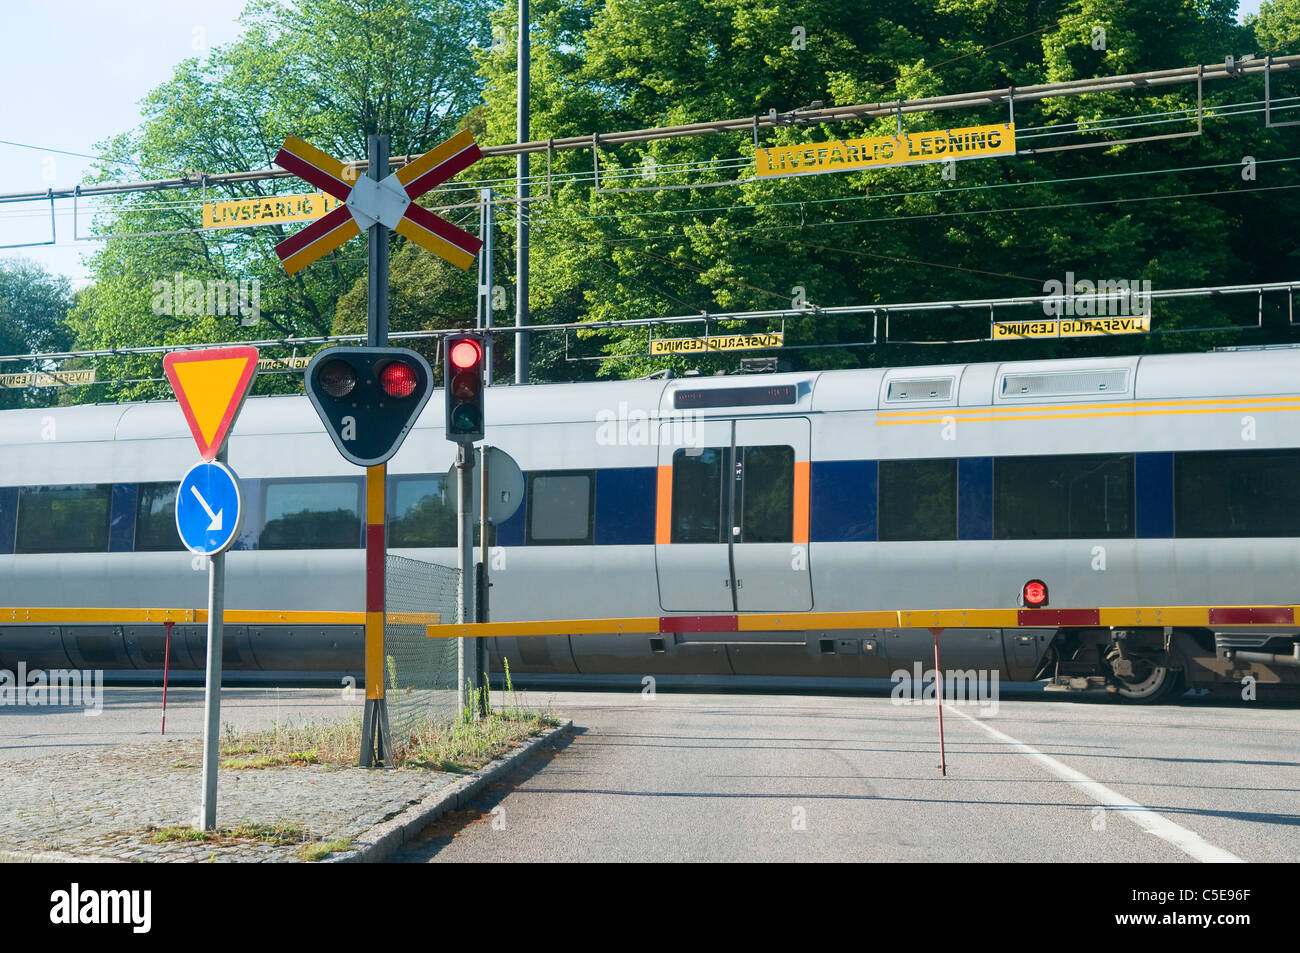 Passenger train passing over railroad crossing with traffic signs in foreground Stock Photo